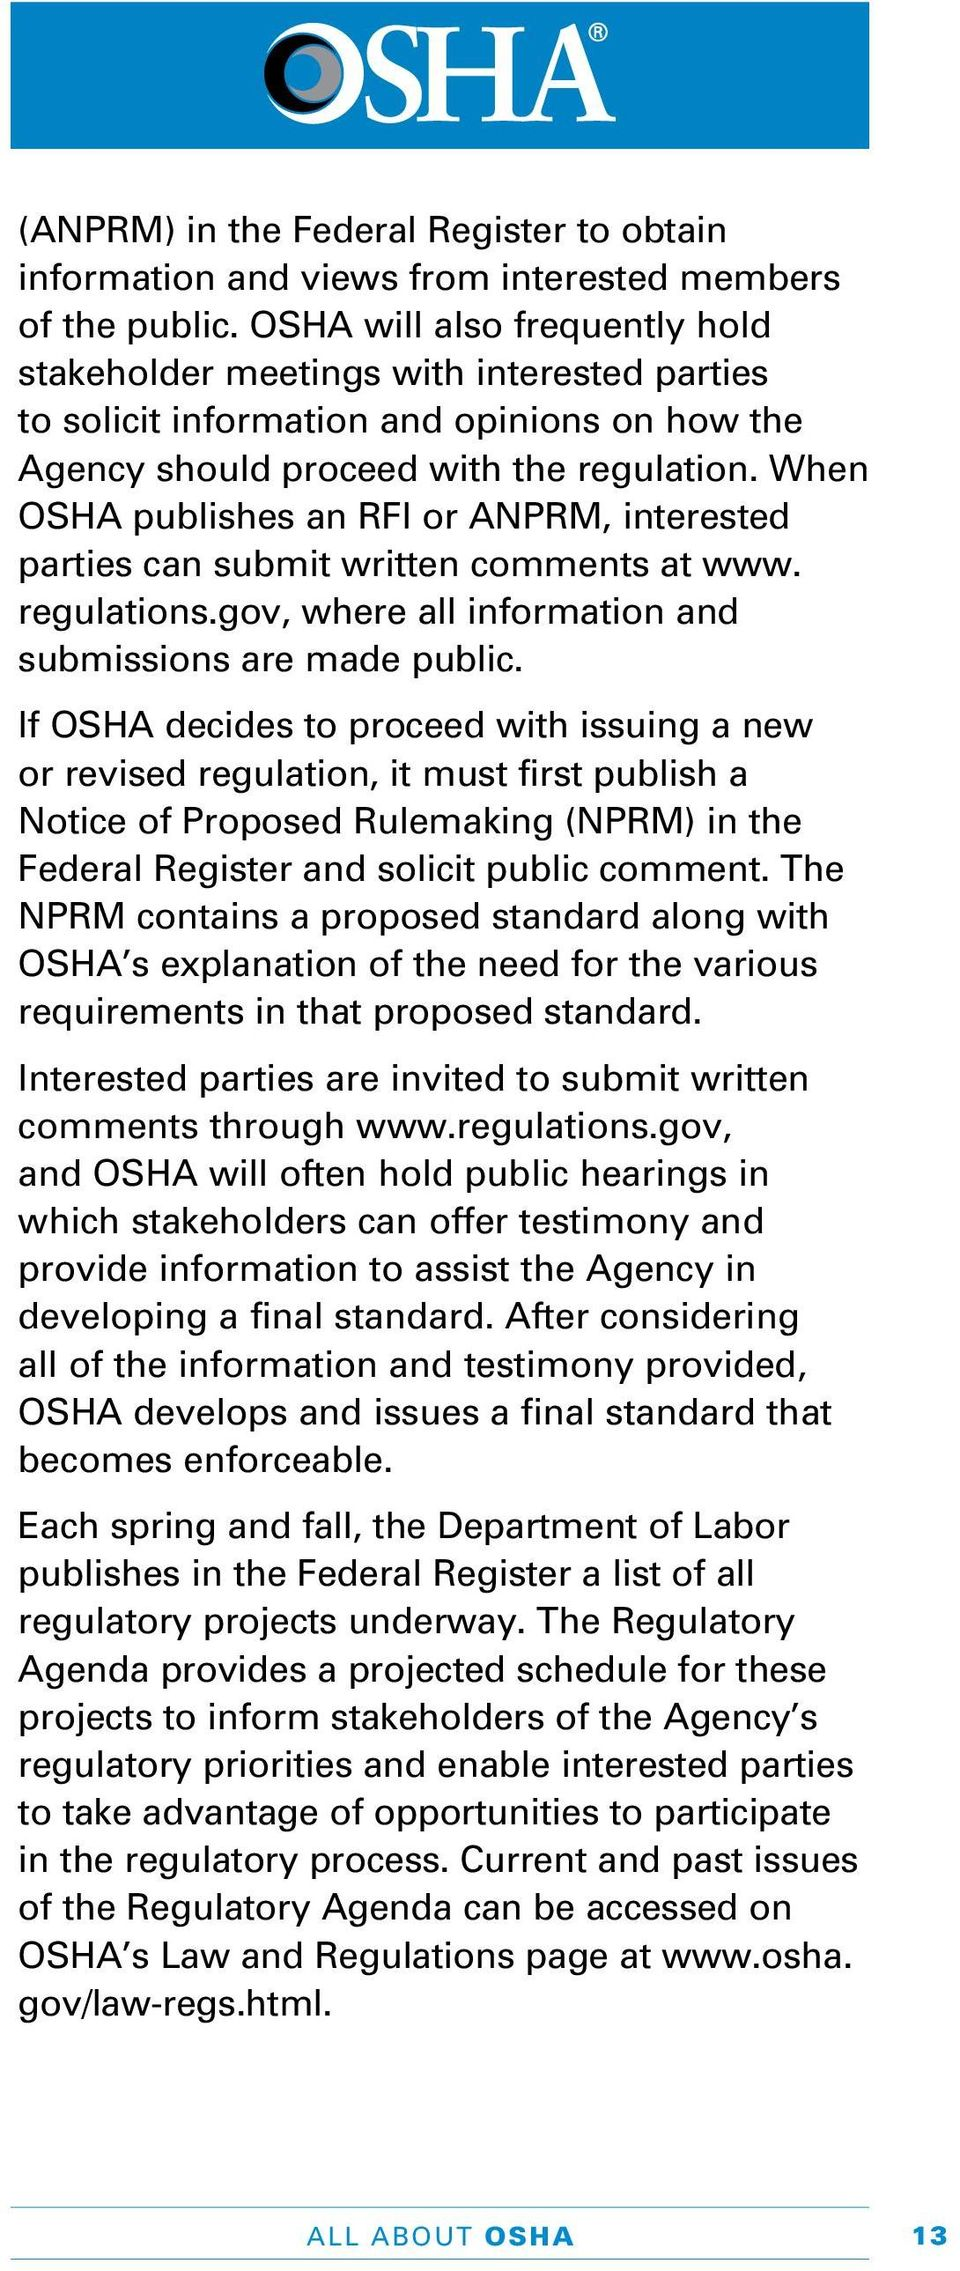 When OSHA publishes an RFI or ANPRM, interested parties can submit written comments at www. regulations.gov, where all information and submissions are made public.